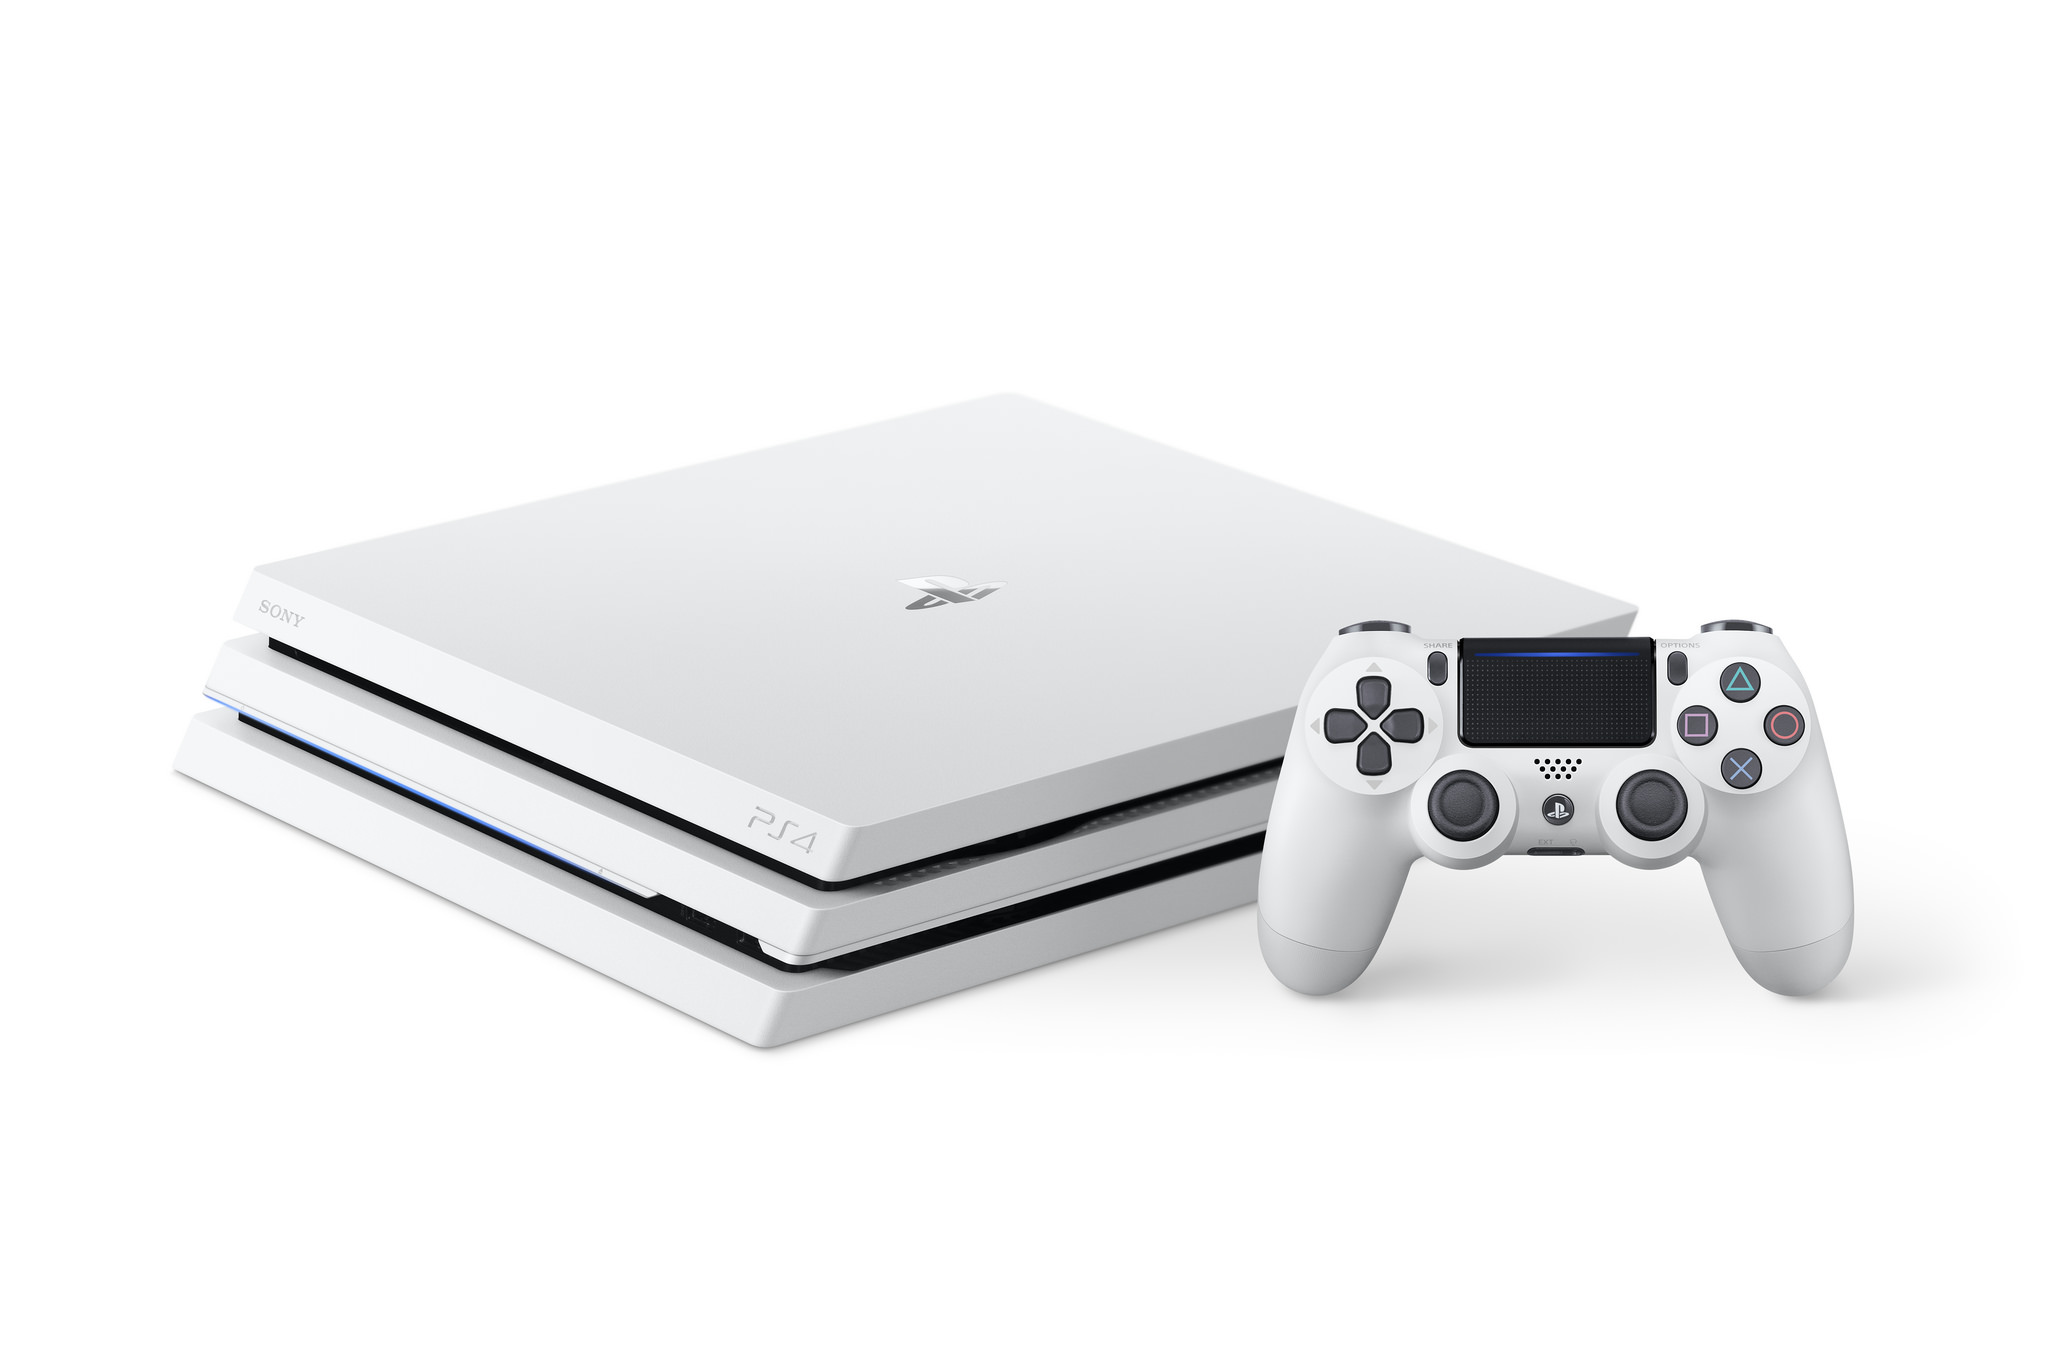 Destiny 2 Headlines The First PS4 Pro Bundle Ever, Featuring